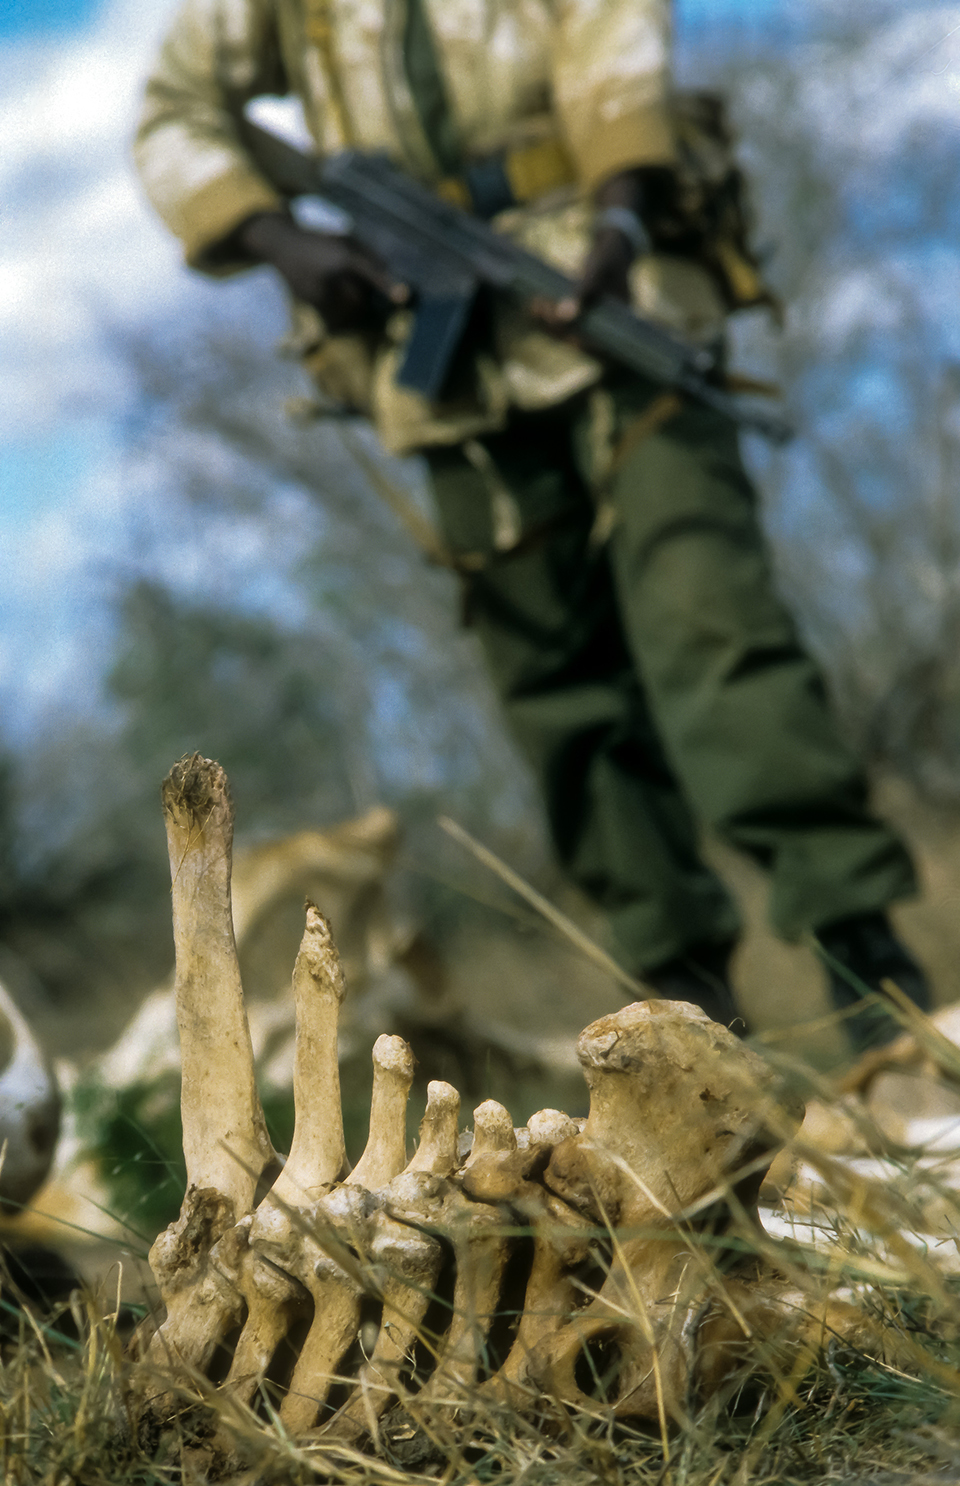 KWS Parks ranger examining the remains of a elephant poached for its tusks & left to die by Somali poachers, Tsavo East NP, Kenya, Africa. 1999 (Levels checked).jpg